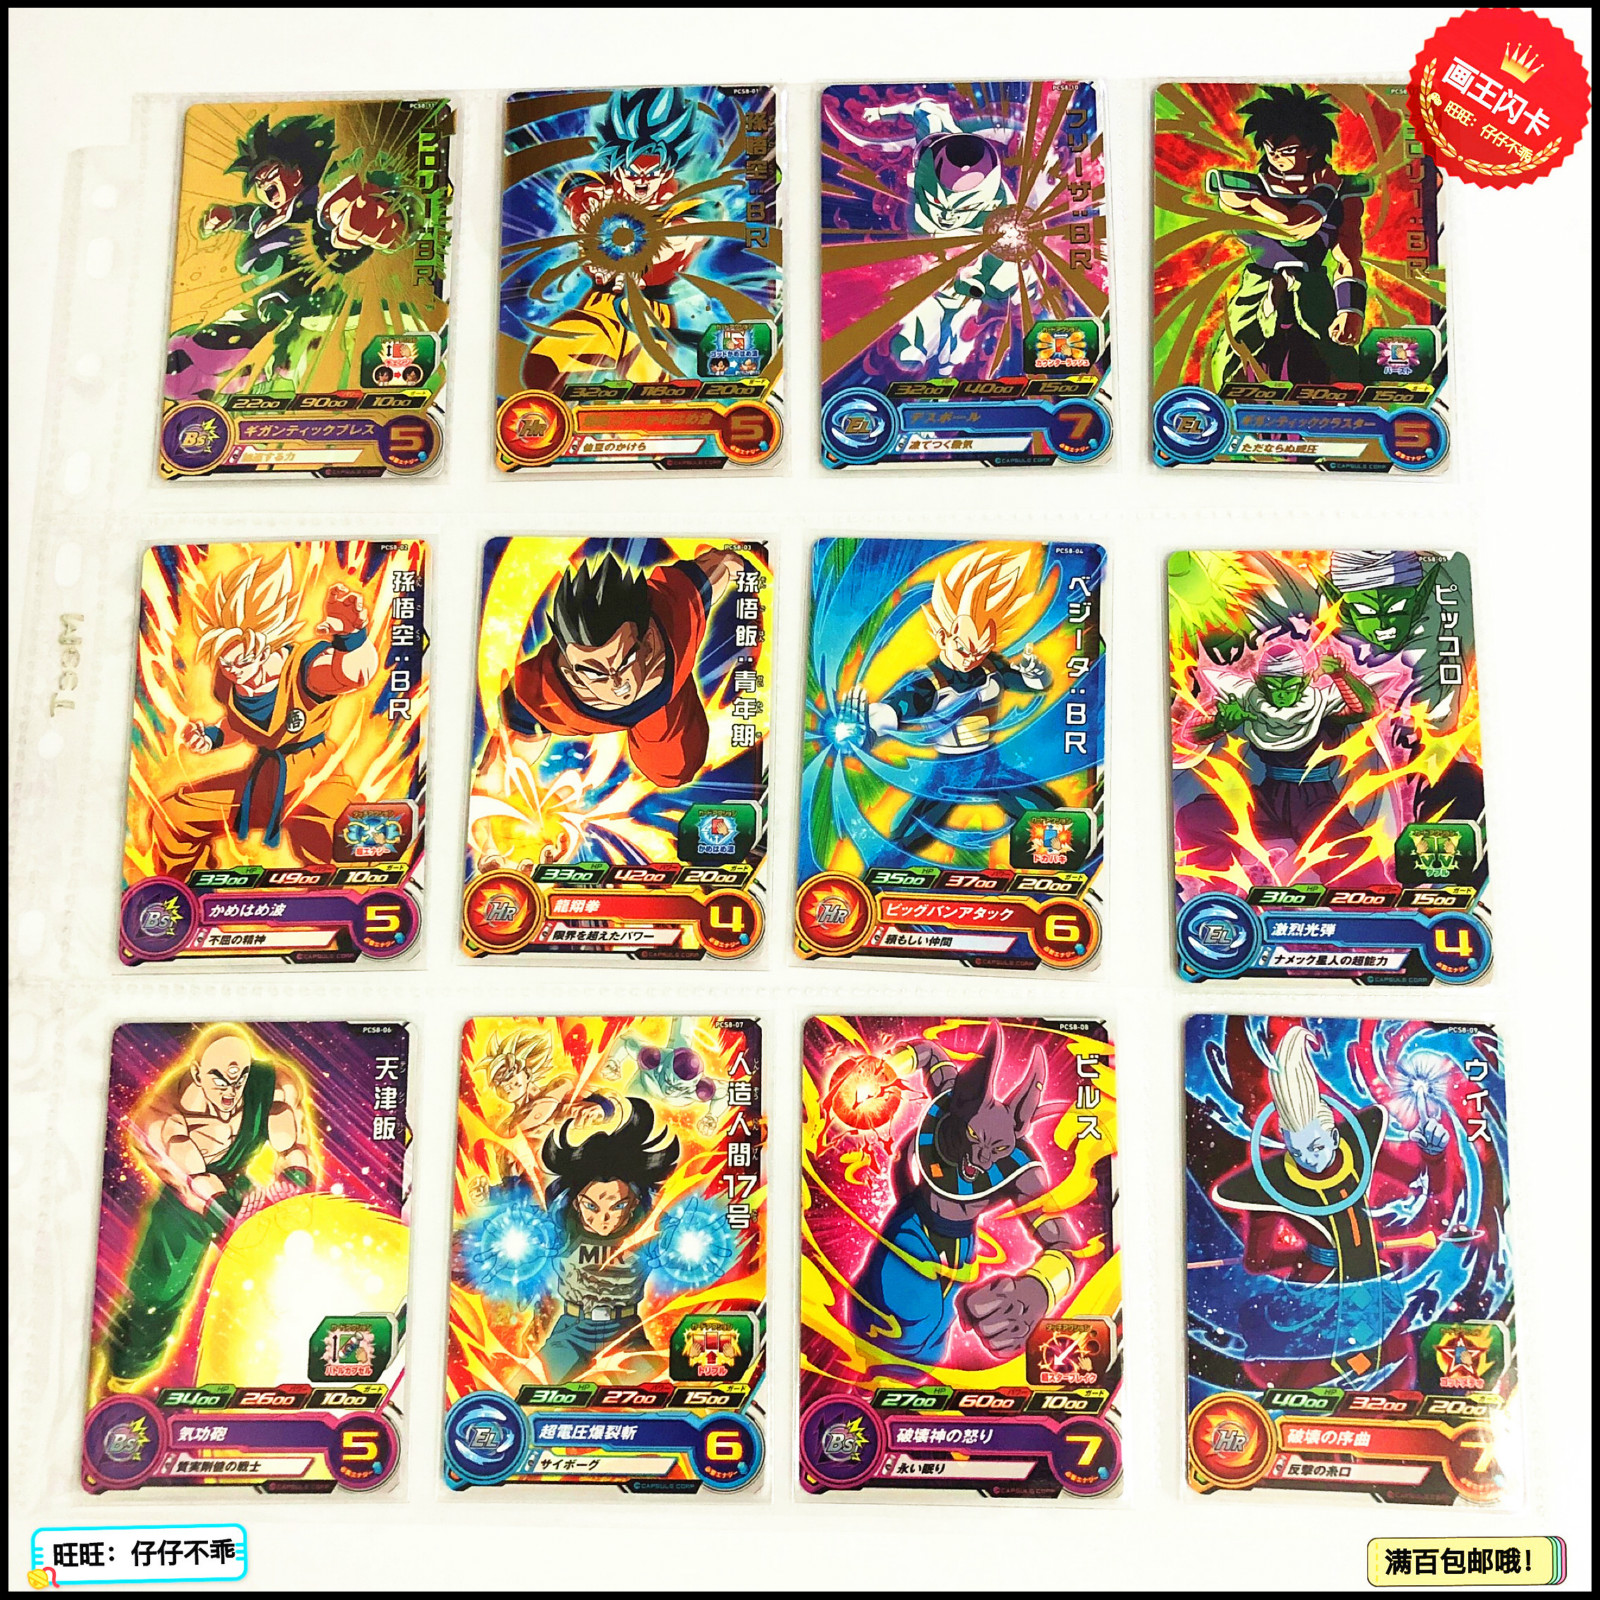 Japan Original Dragon Ball Hero PCS8 Broli God Super Saiyan Goku Toys Hobbies Collectibles Game Collection Anime Cards